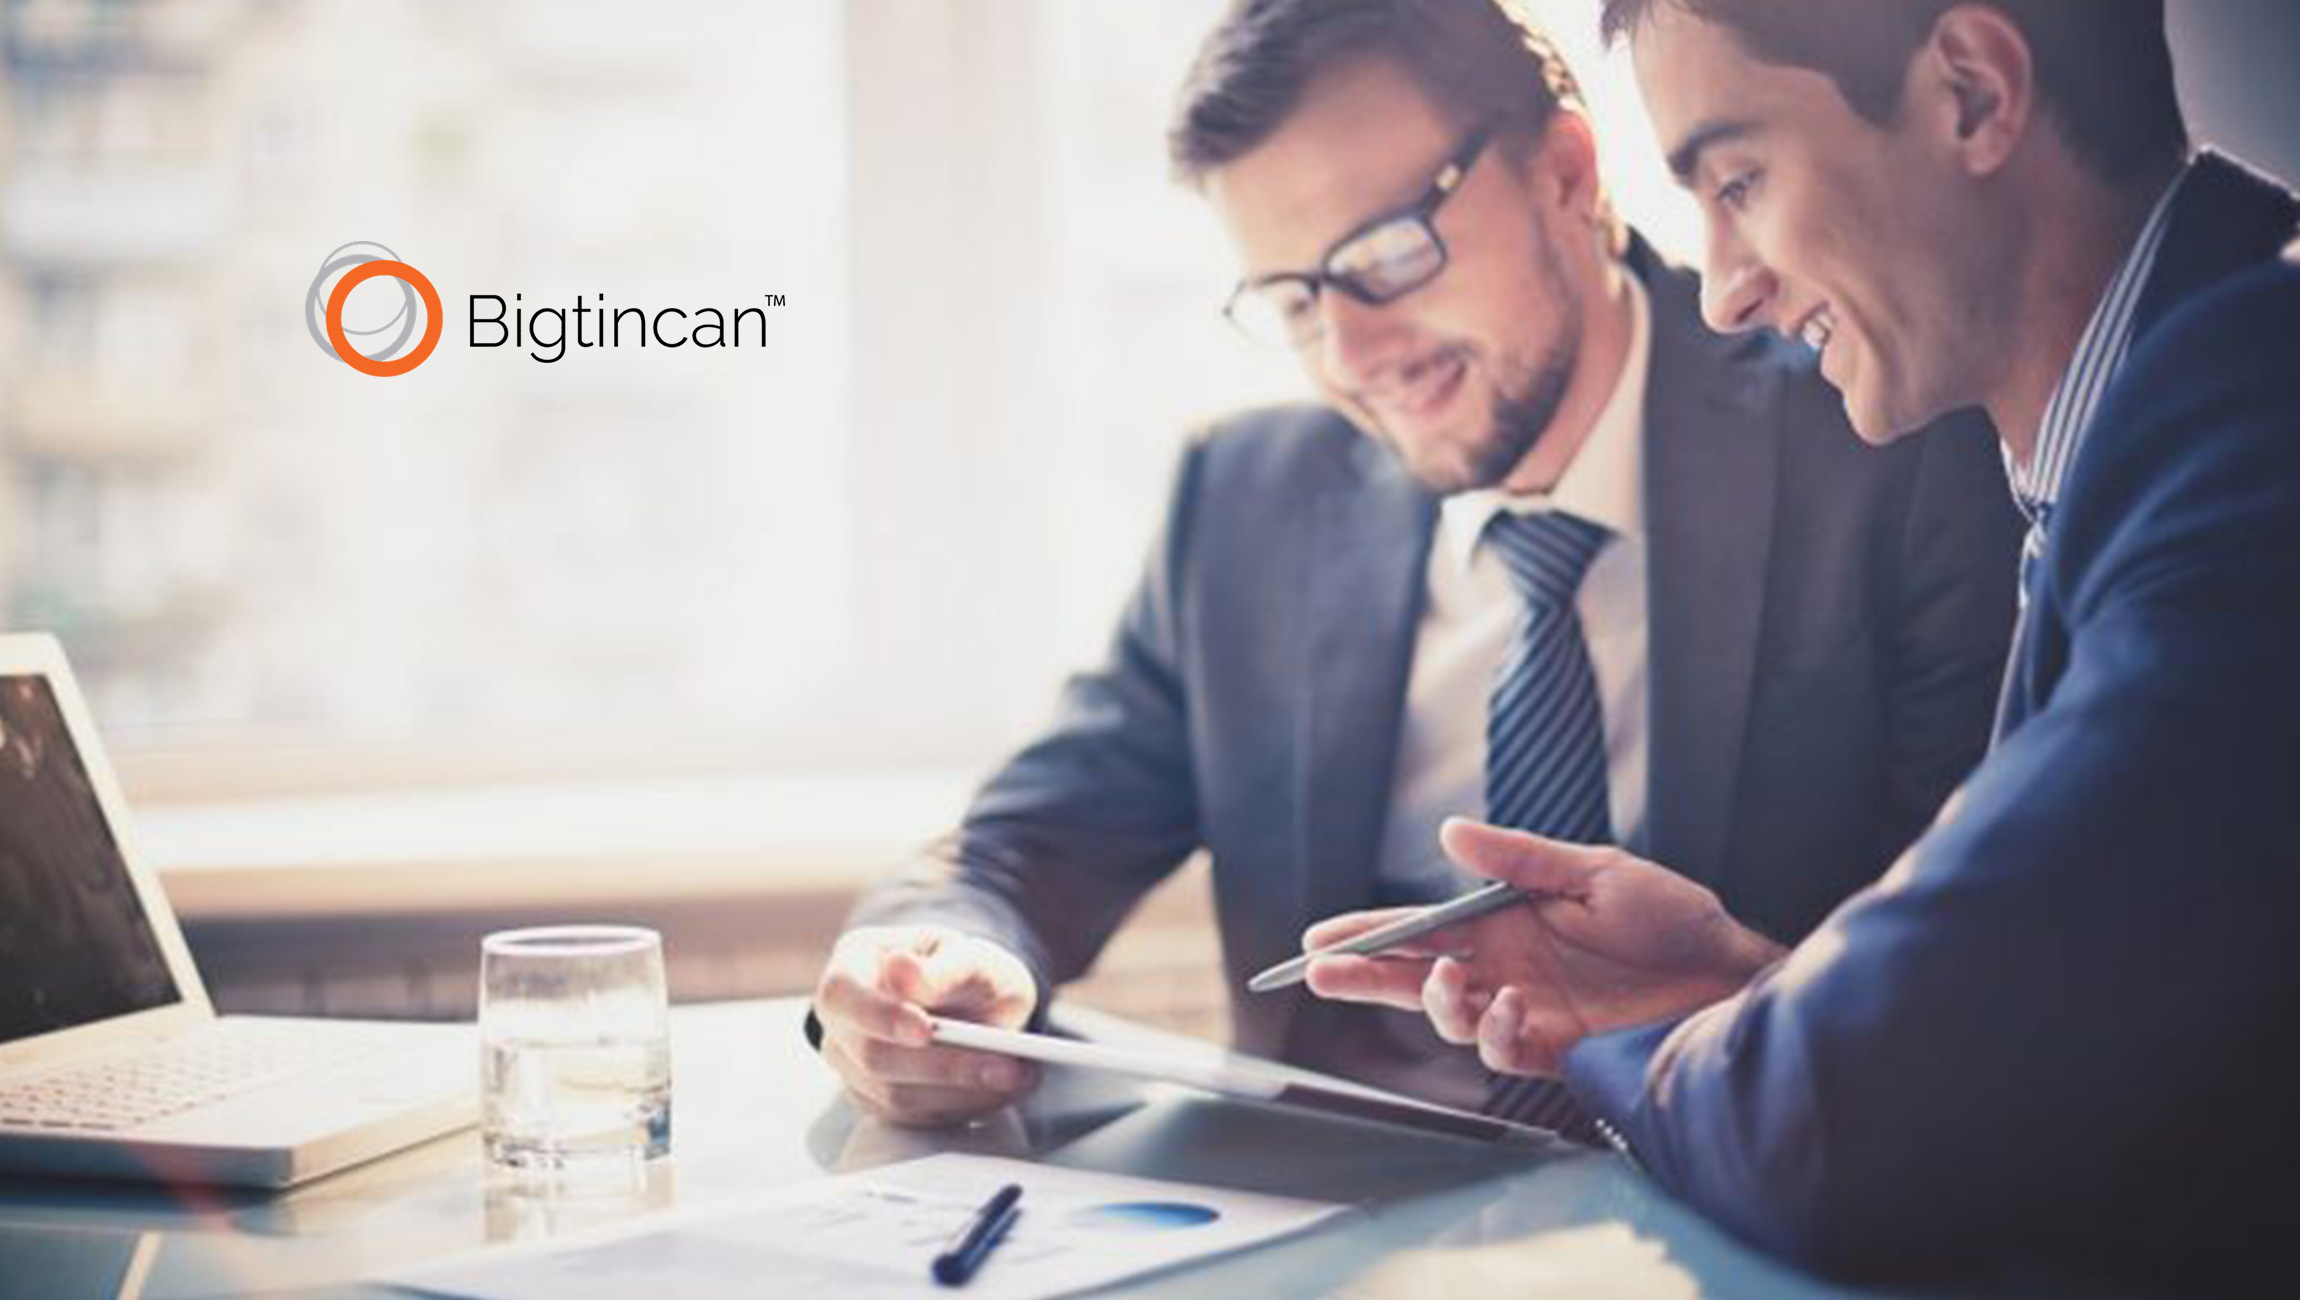 Bigtincan Introduces Bigtincan Retail to Empower Retail Sales Teams to Reshape the Shopping Experience